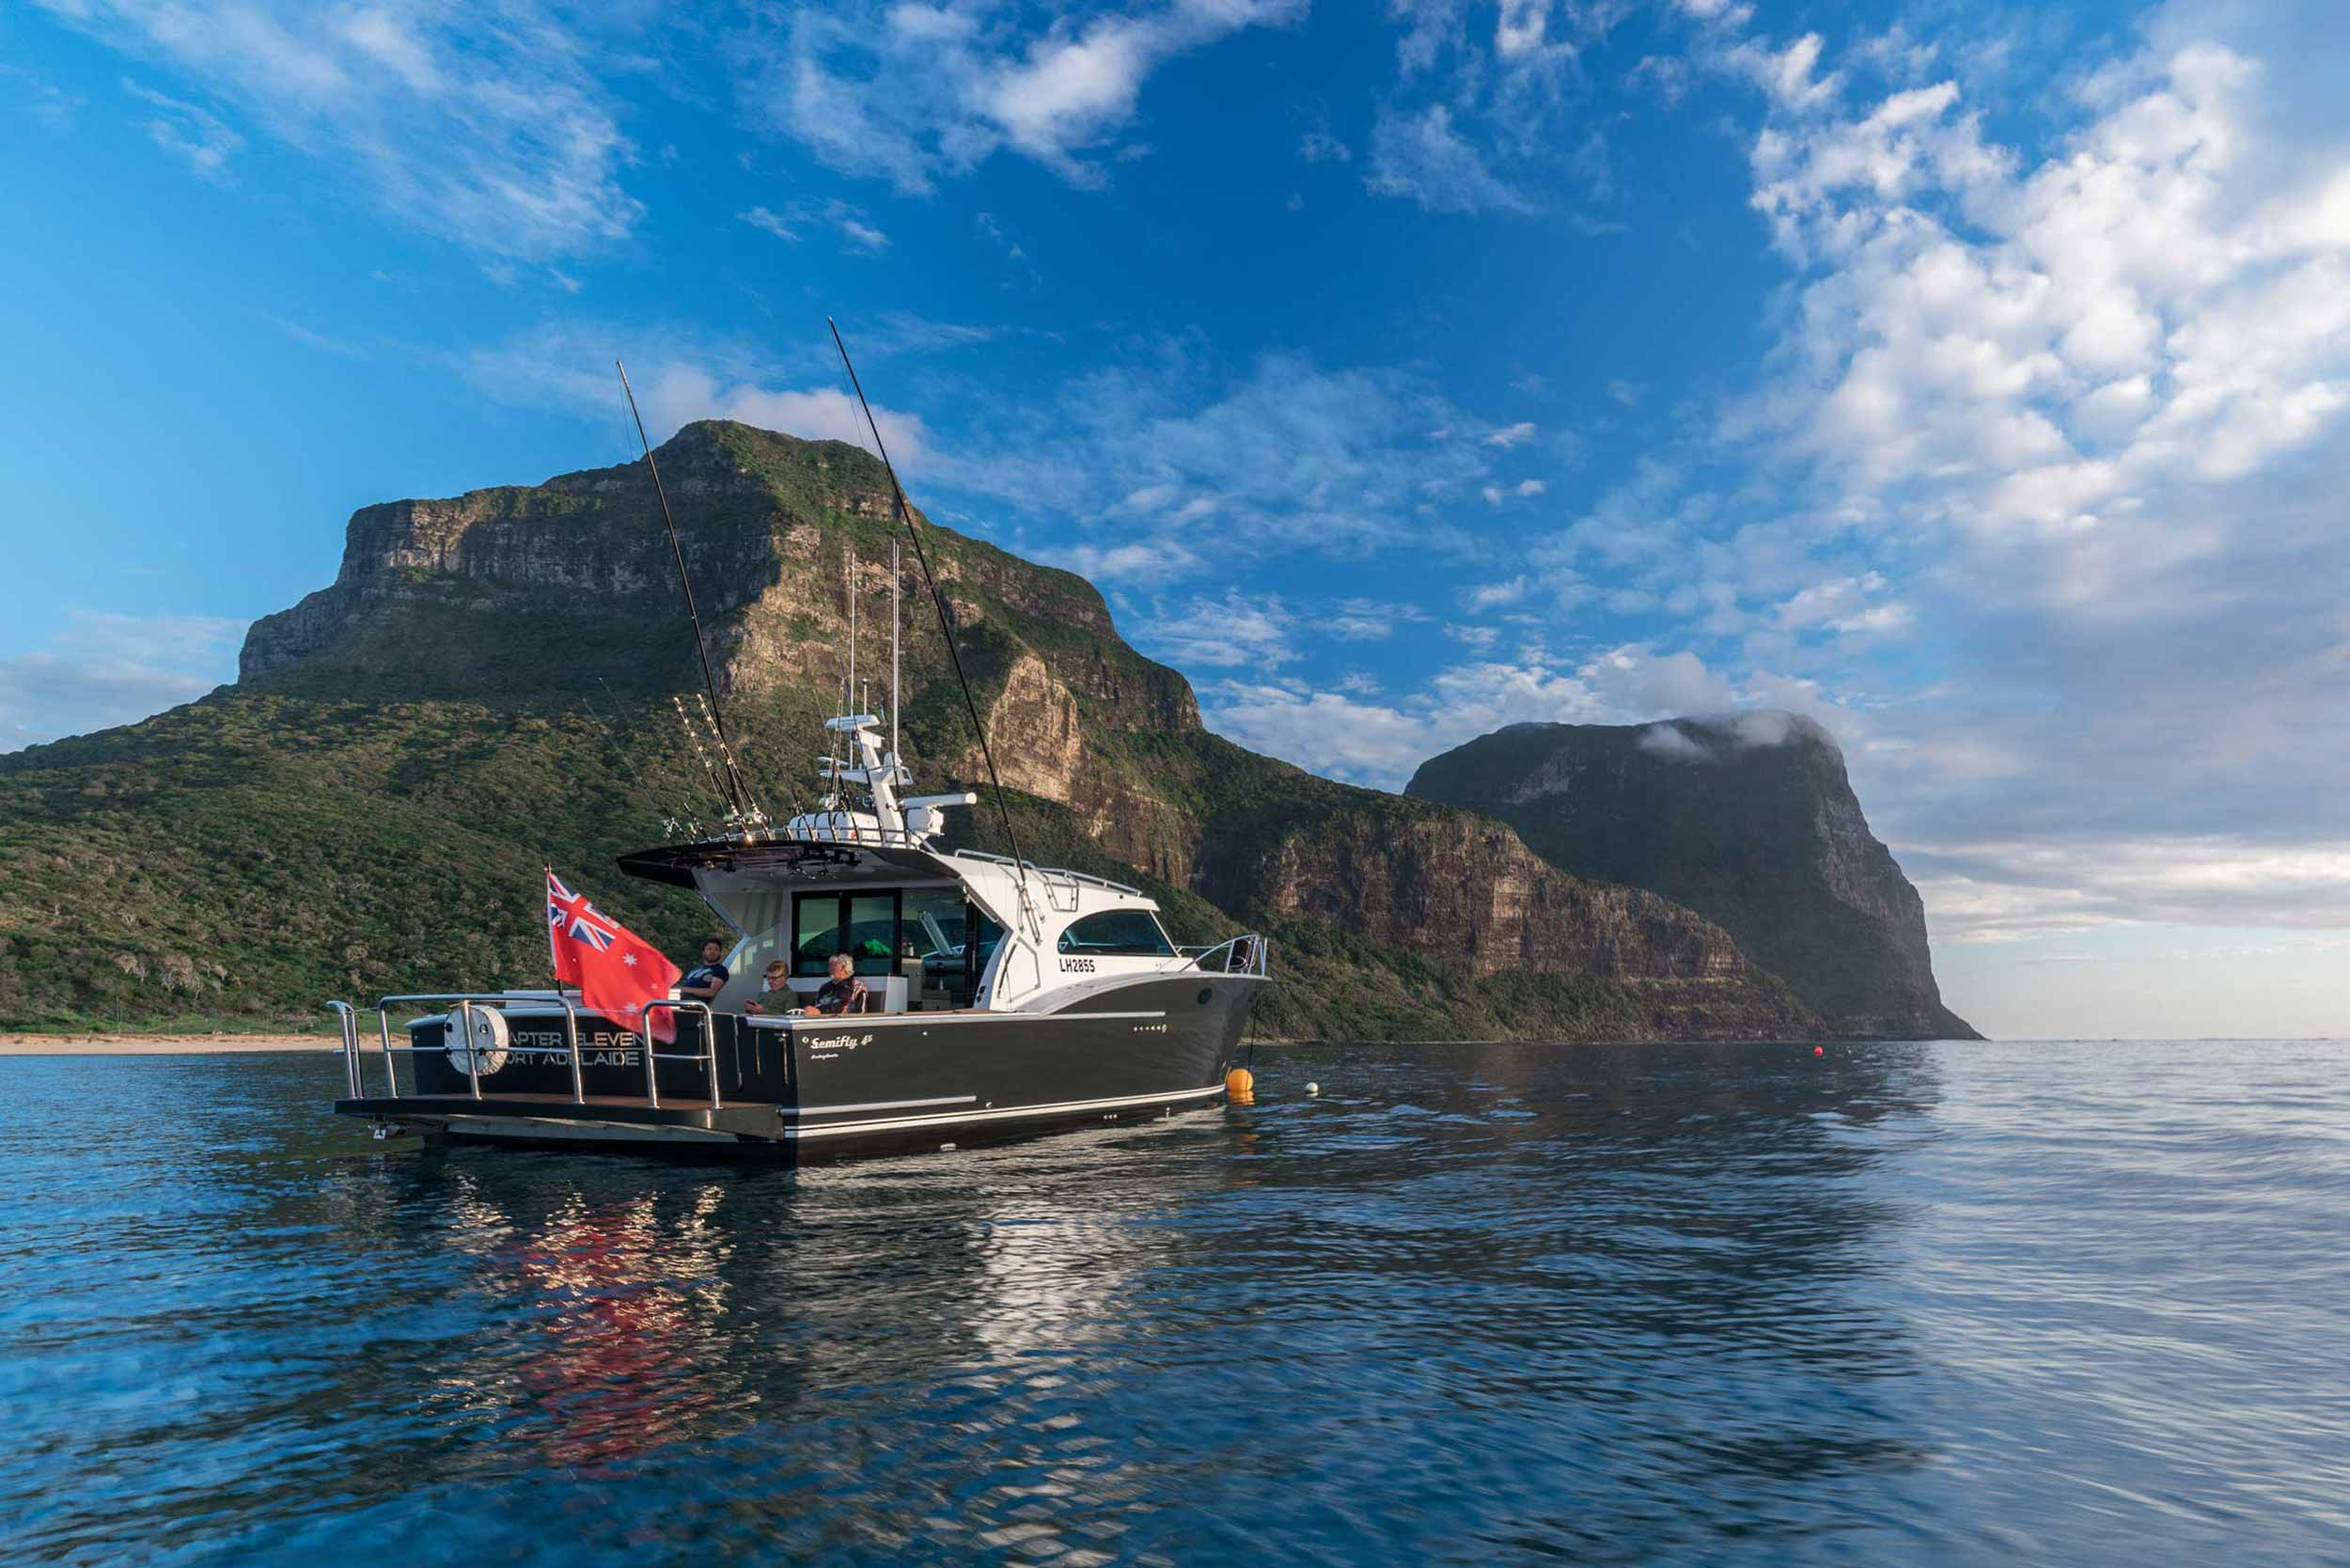 Dickey Semifly 45 at Lord Howe Island